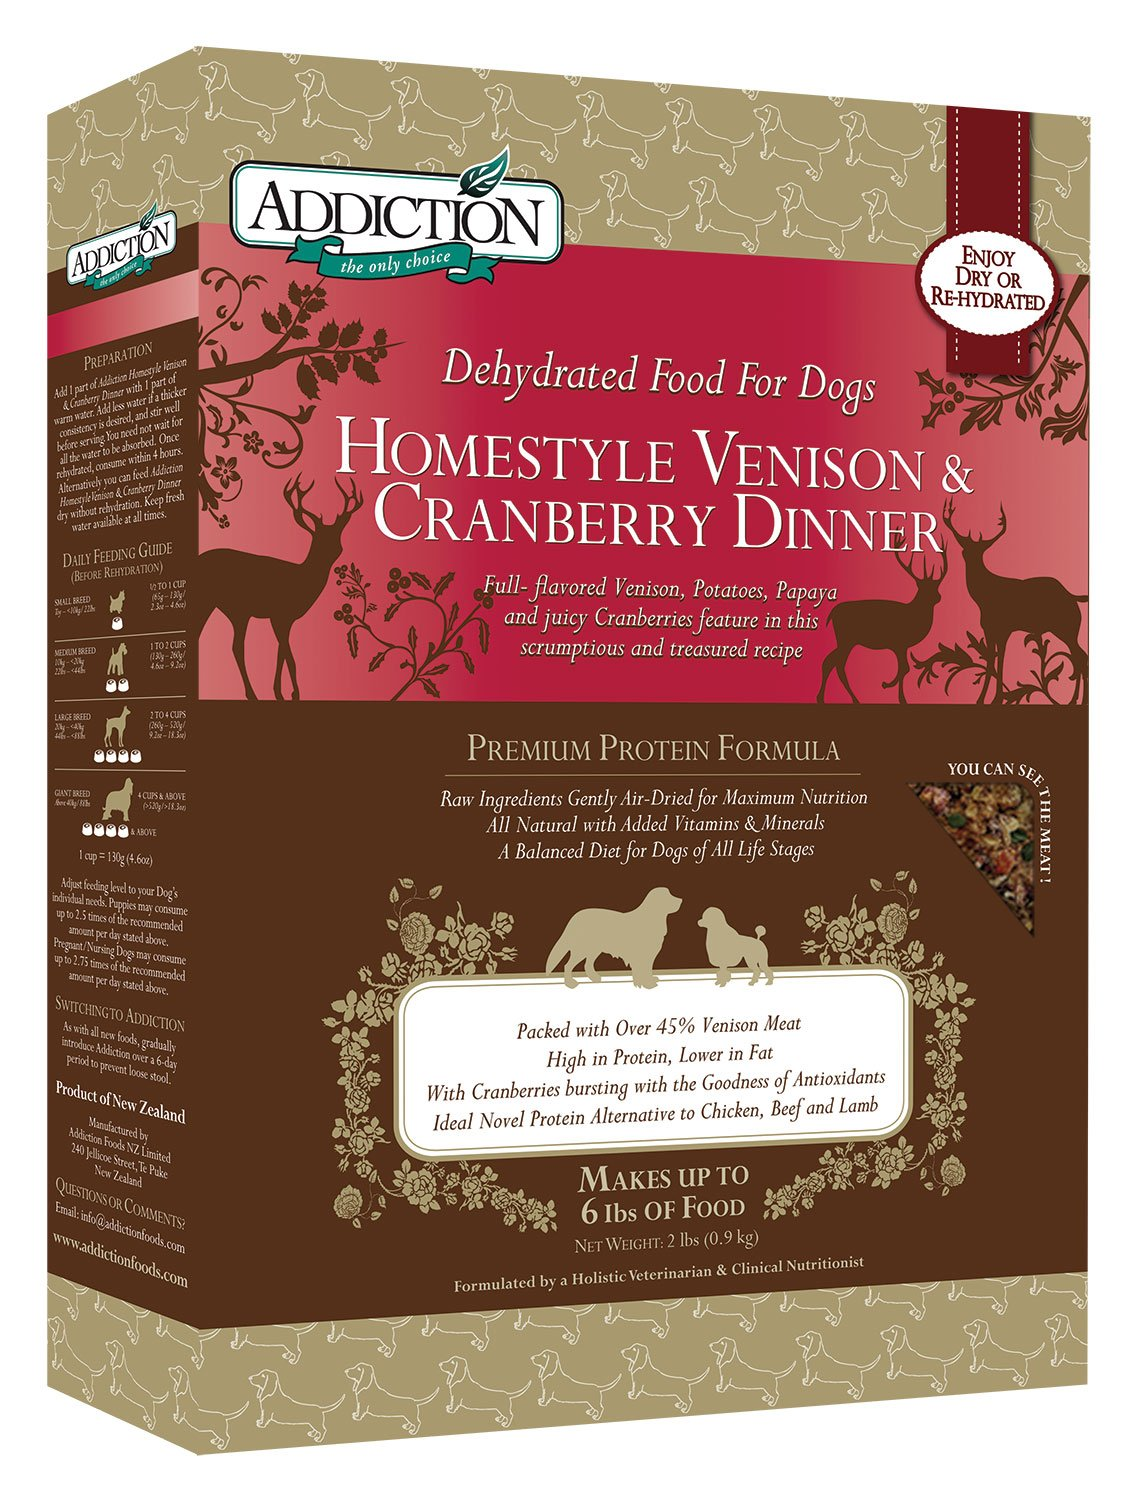 Addiction Homestyle Venison & Cranberry Filler Free Dehydrated Dog Food, 2 Lb. by Addiction Pet Foods